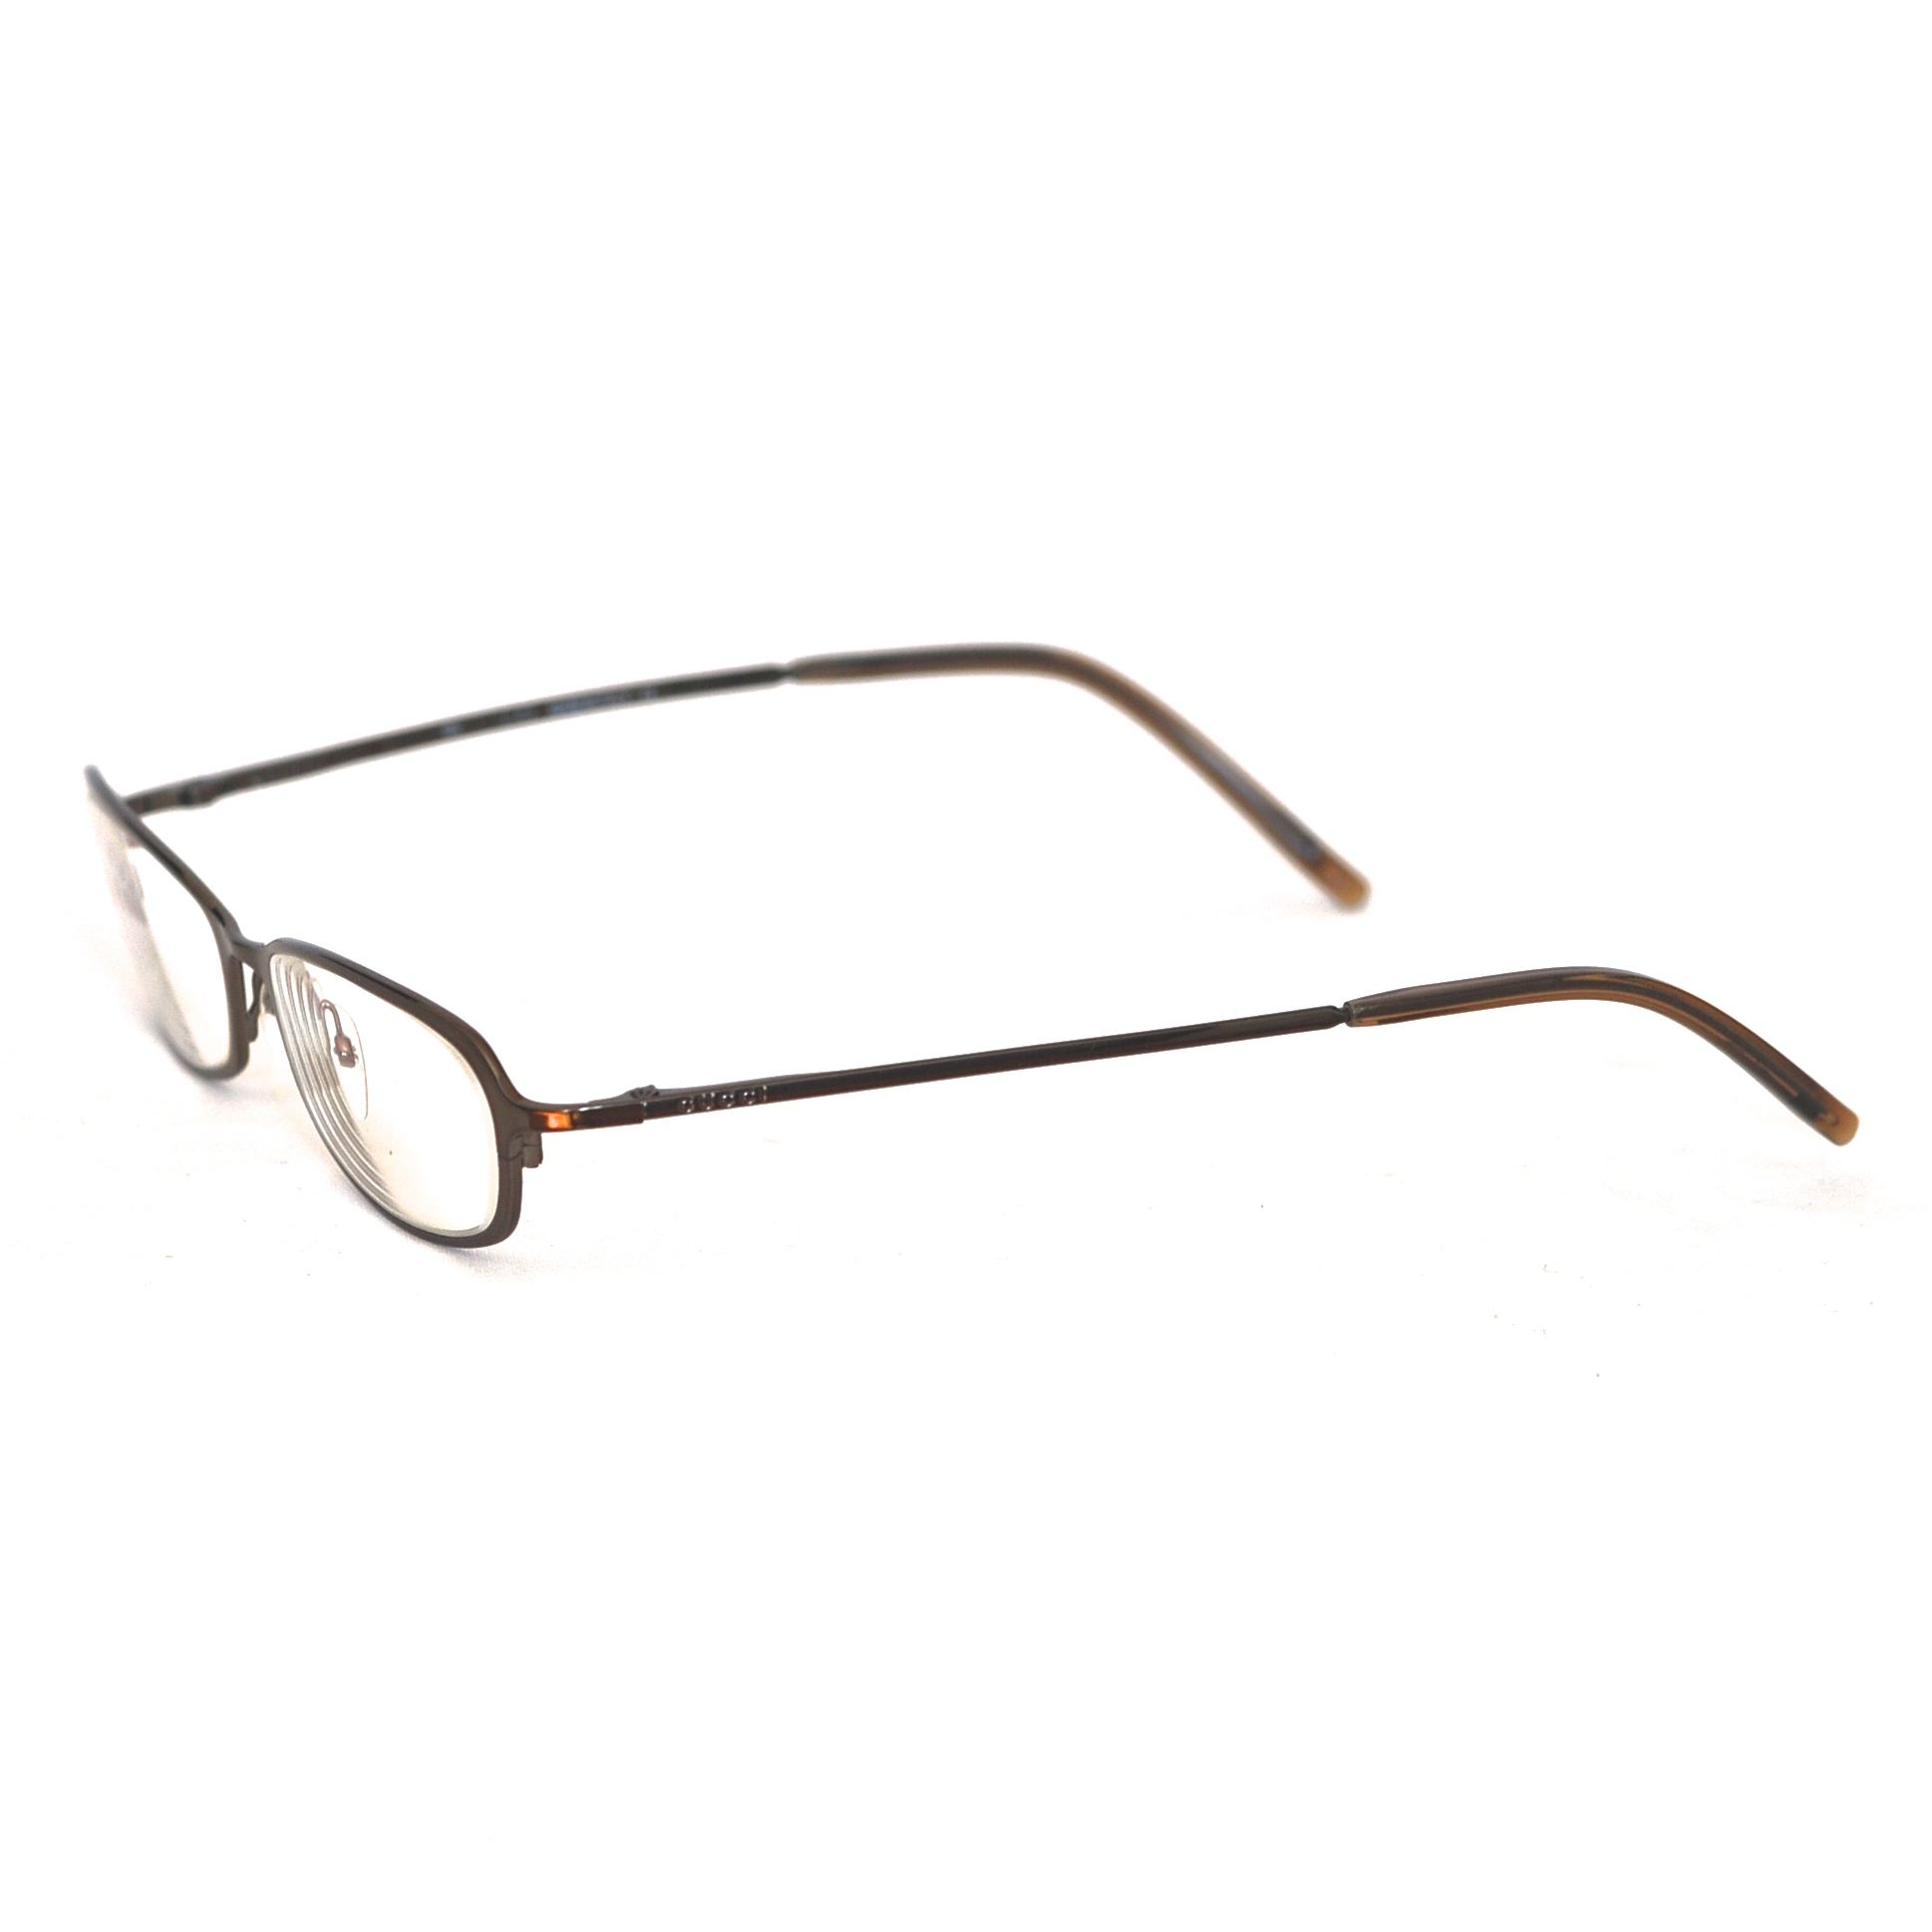 Gucci Eyeglass Frames In A Dark Metal With A Hint Of Bronze – Italy ...